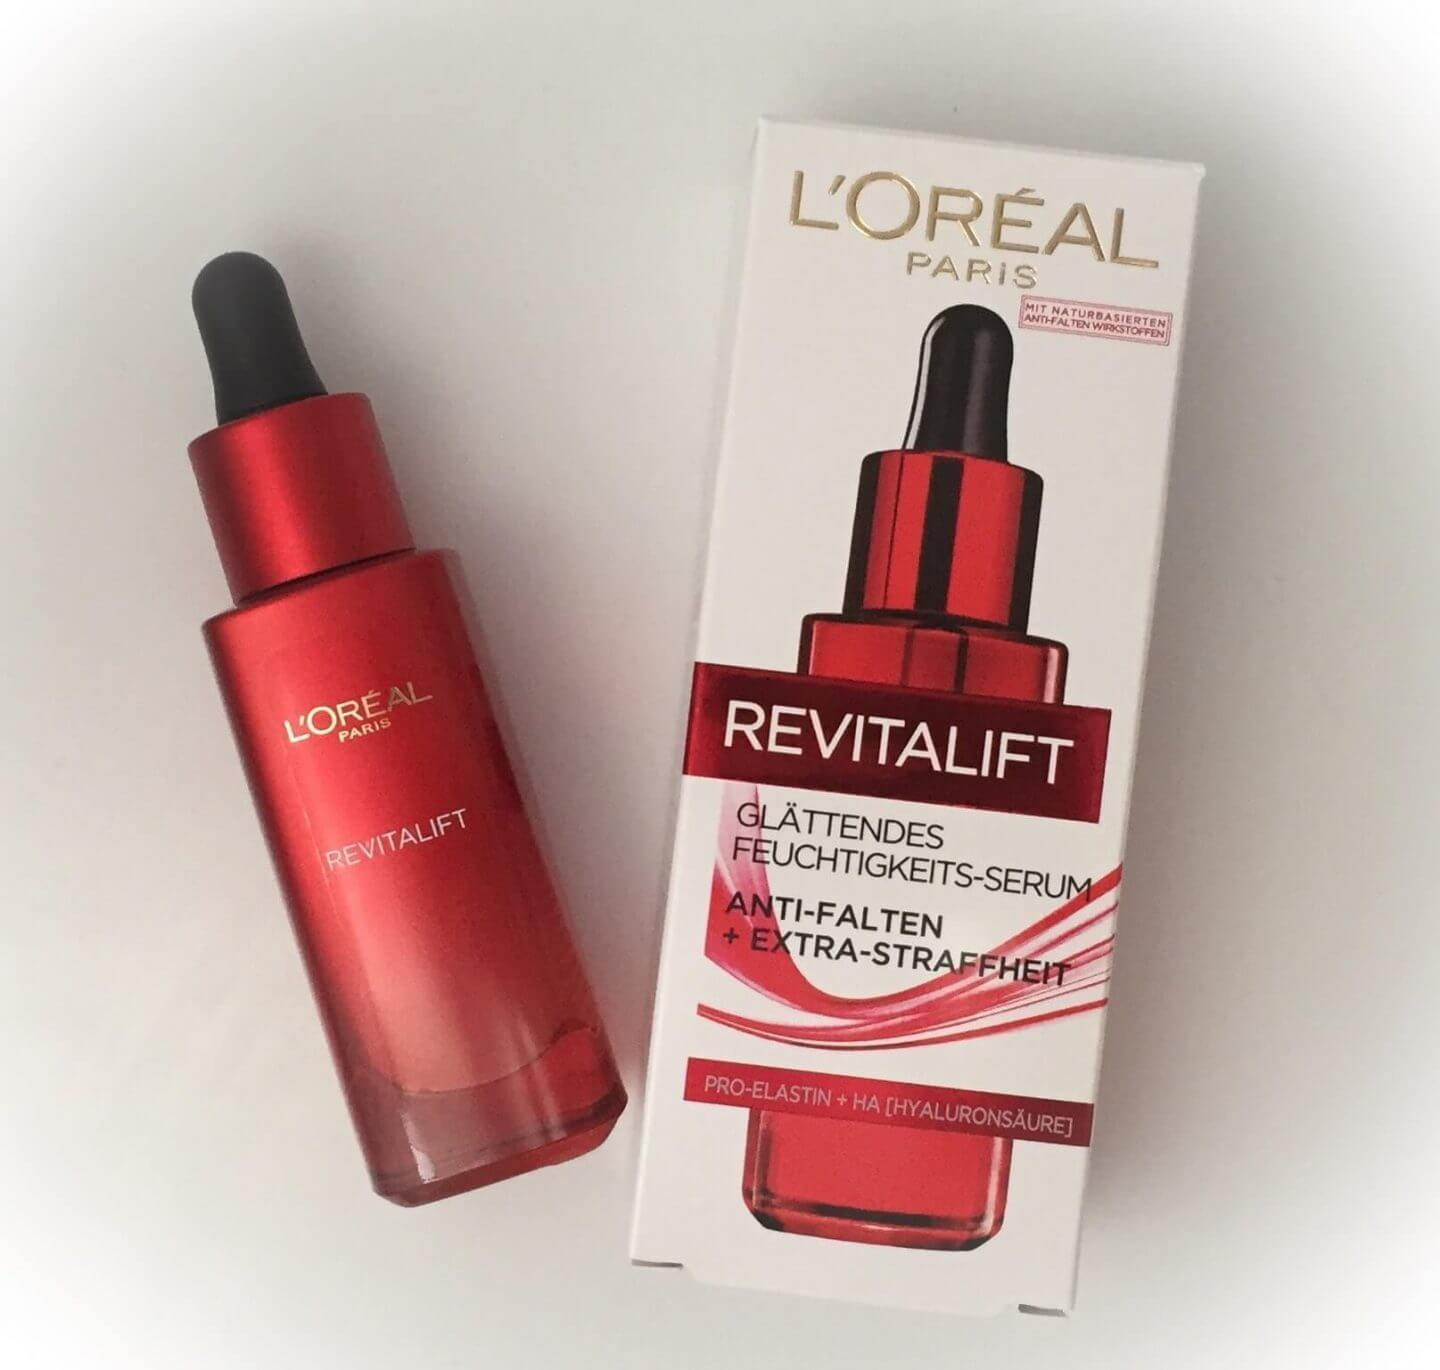 Revitalift Anti-Falten Serum